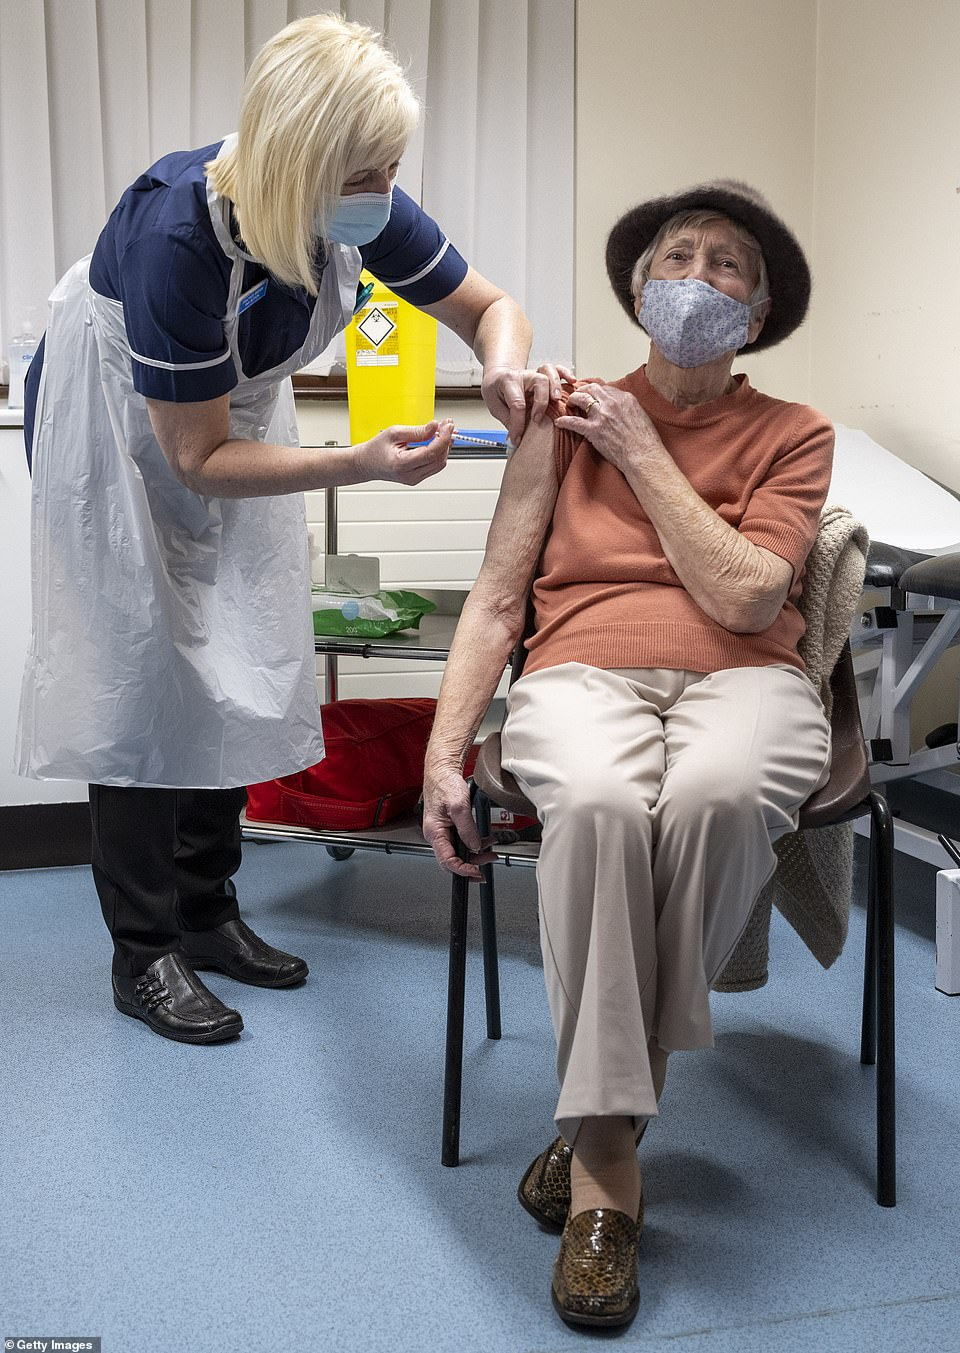 A nurse administers the Oxford-AstraZeneca vaccine to a patient at Pontcae Medical Practice on January 4 in Merthyr Tydfil, Wales. The Oxford-AstraZeneca COVID-19 vaccine was administered at a handful of hospitals before being rolled out to hundreds of GP-led sites across the country